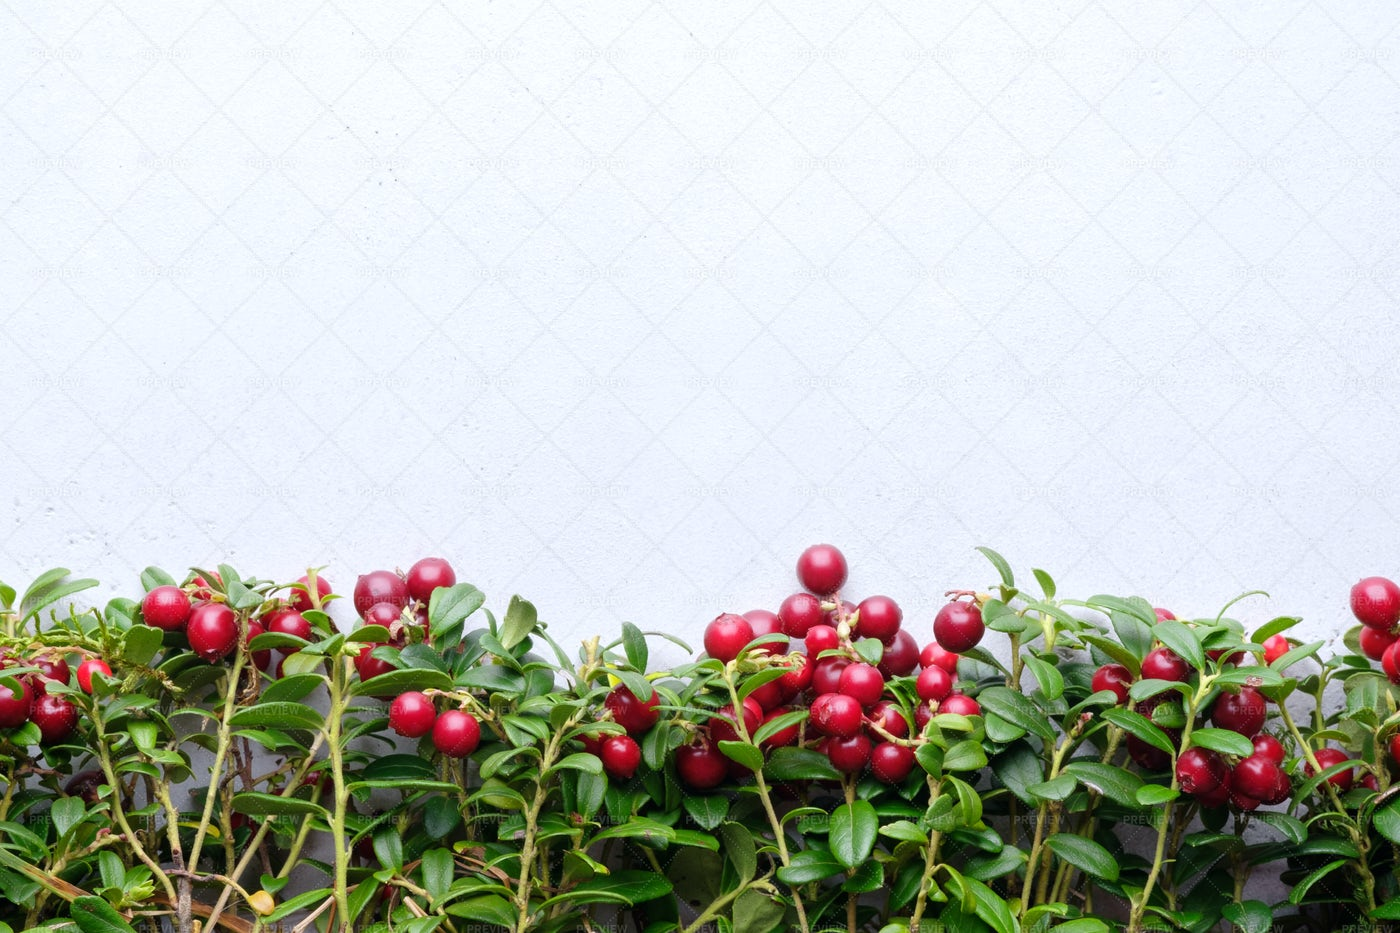 Background With Lingonberry: Stock Photos